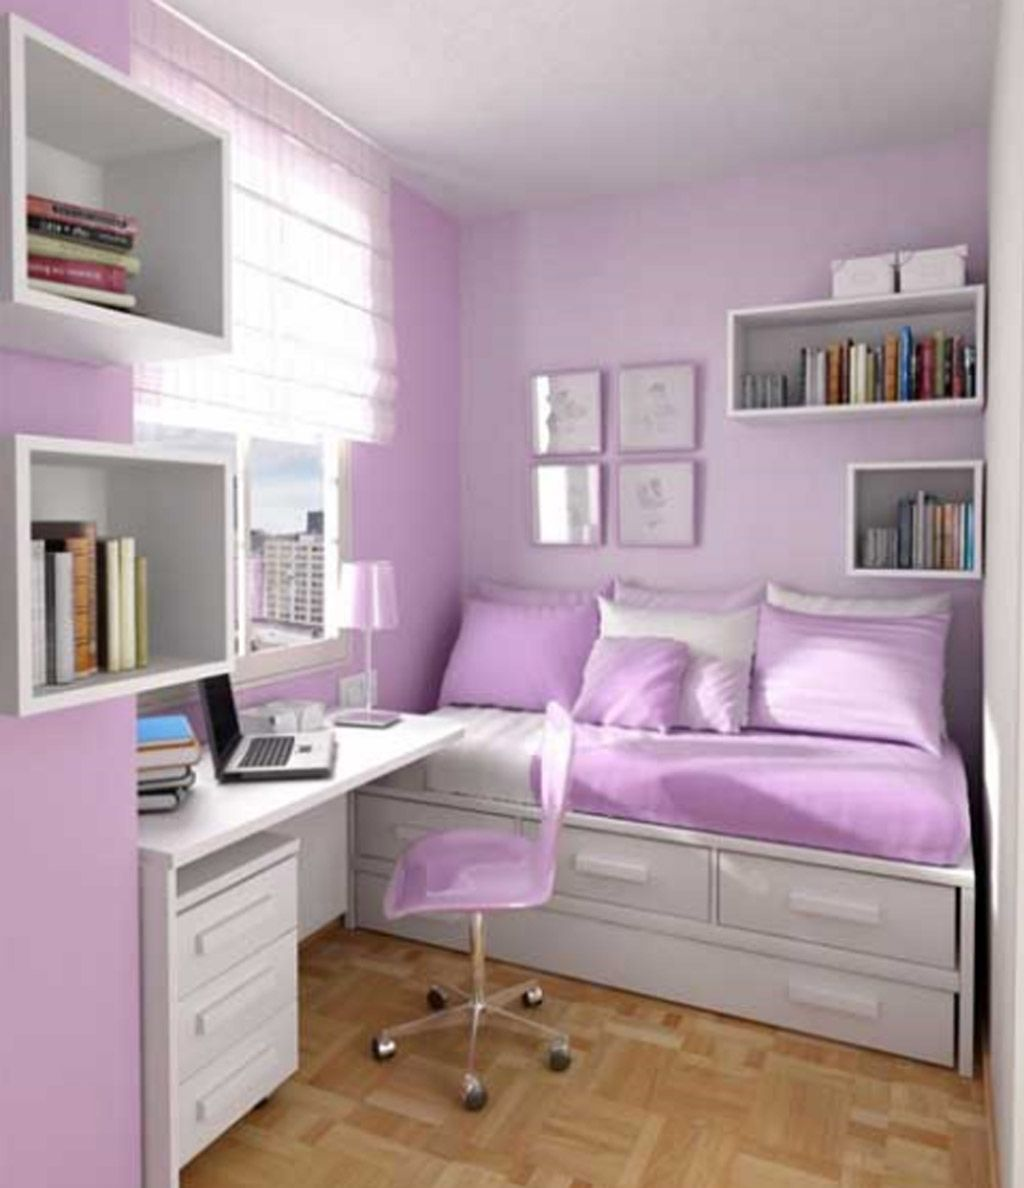 Bedroom designs for teenage girls purple - Cute Bedroom Ideas For Teenage Girls Best Interior Design Blogs Fashion Pinterest